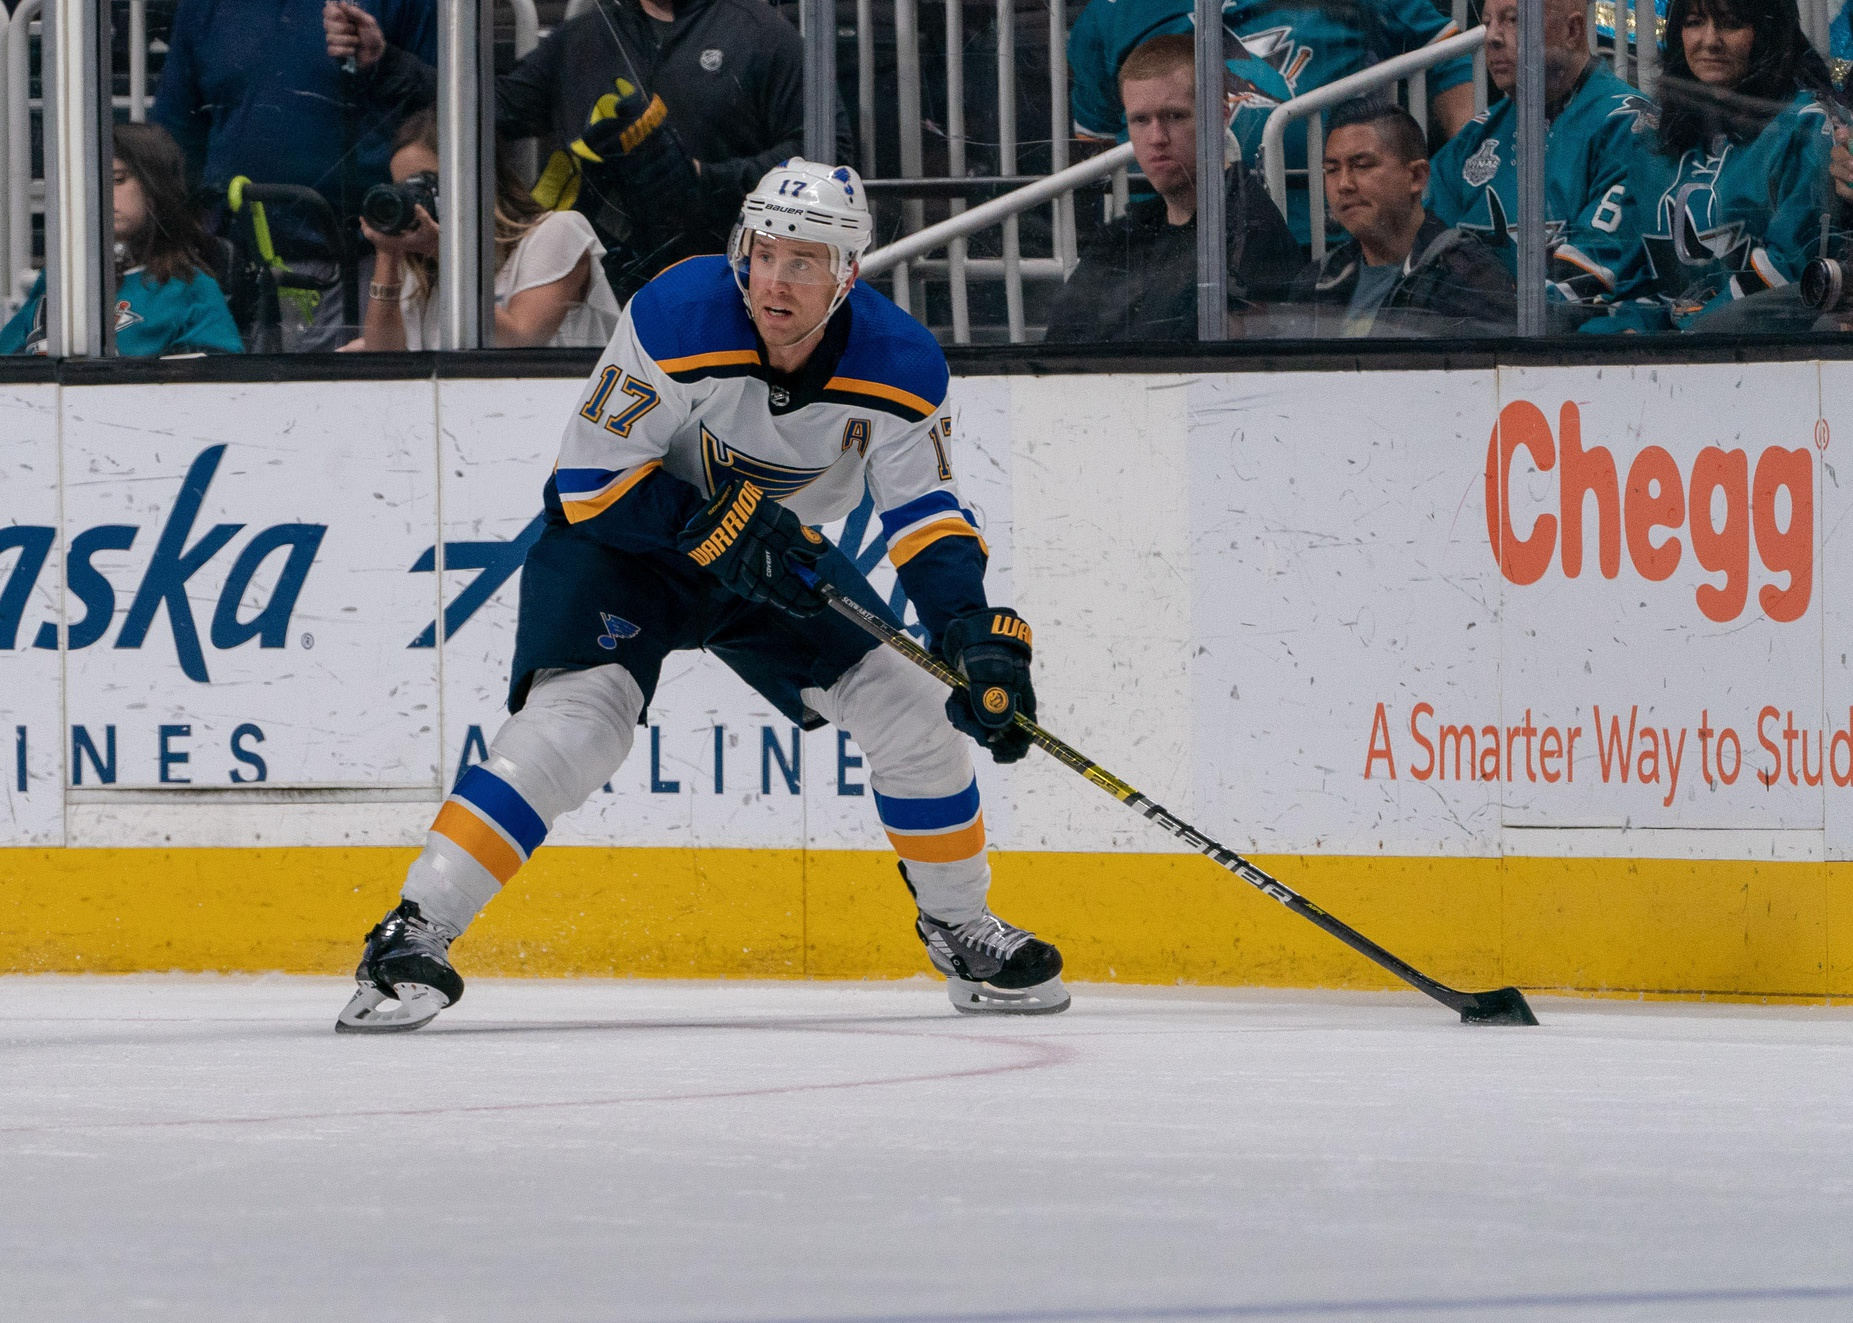 The Blues' offensive depth has raised some serious questions